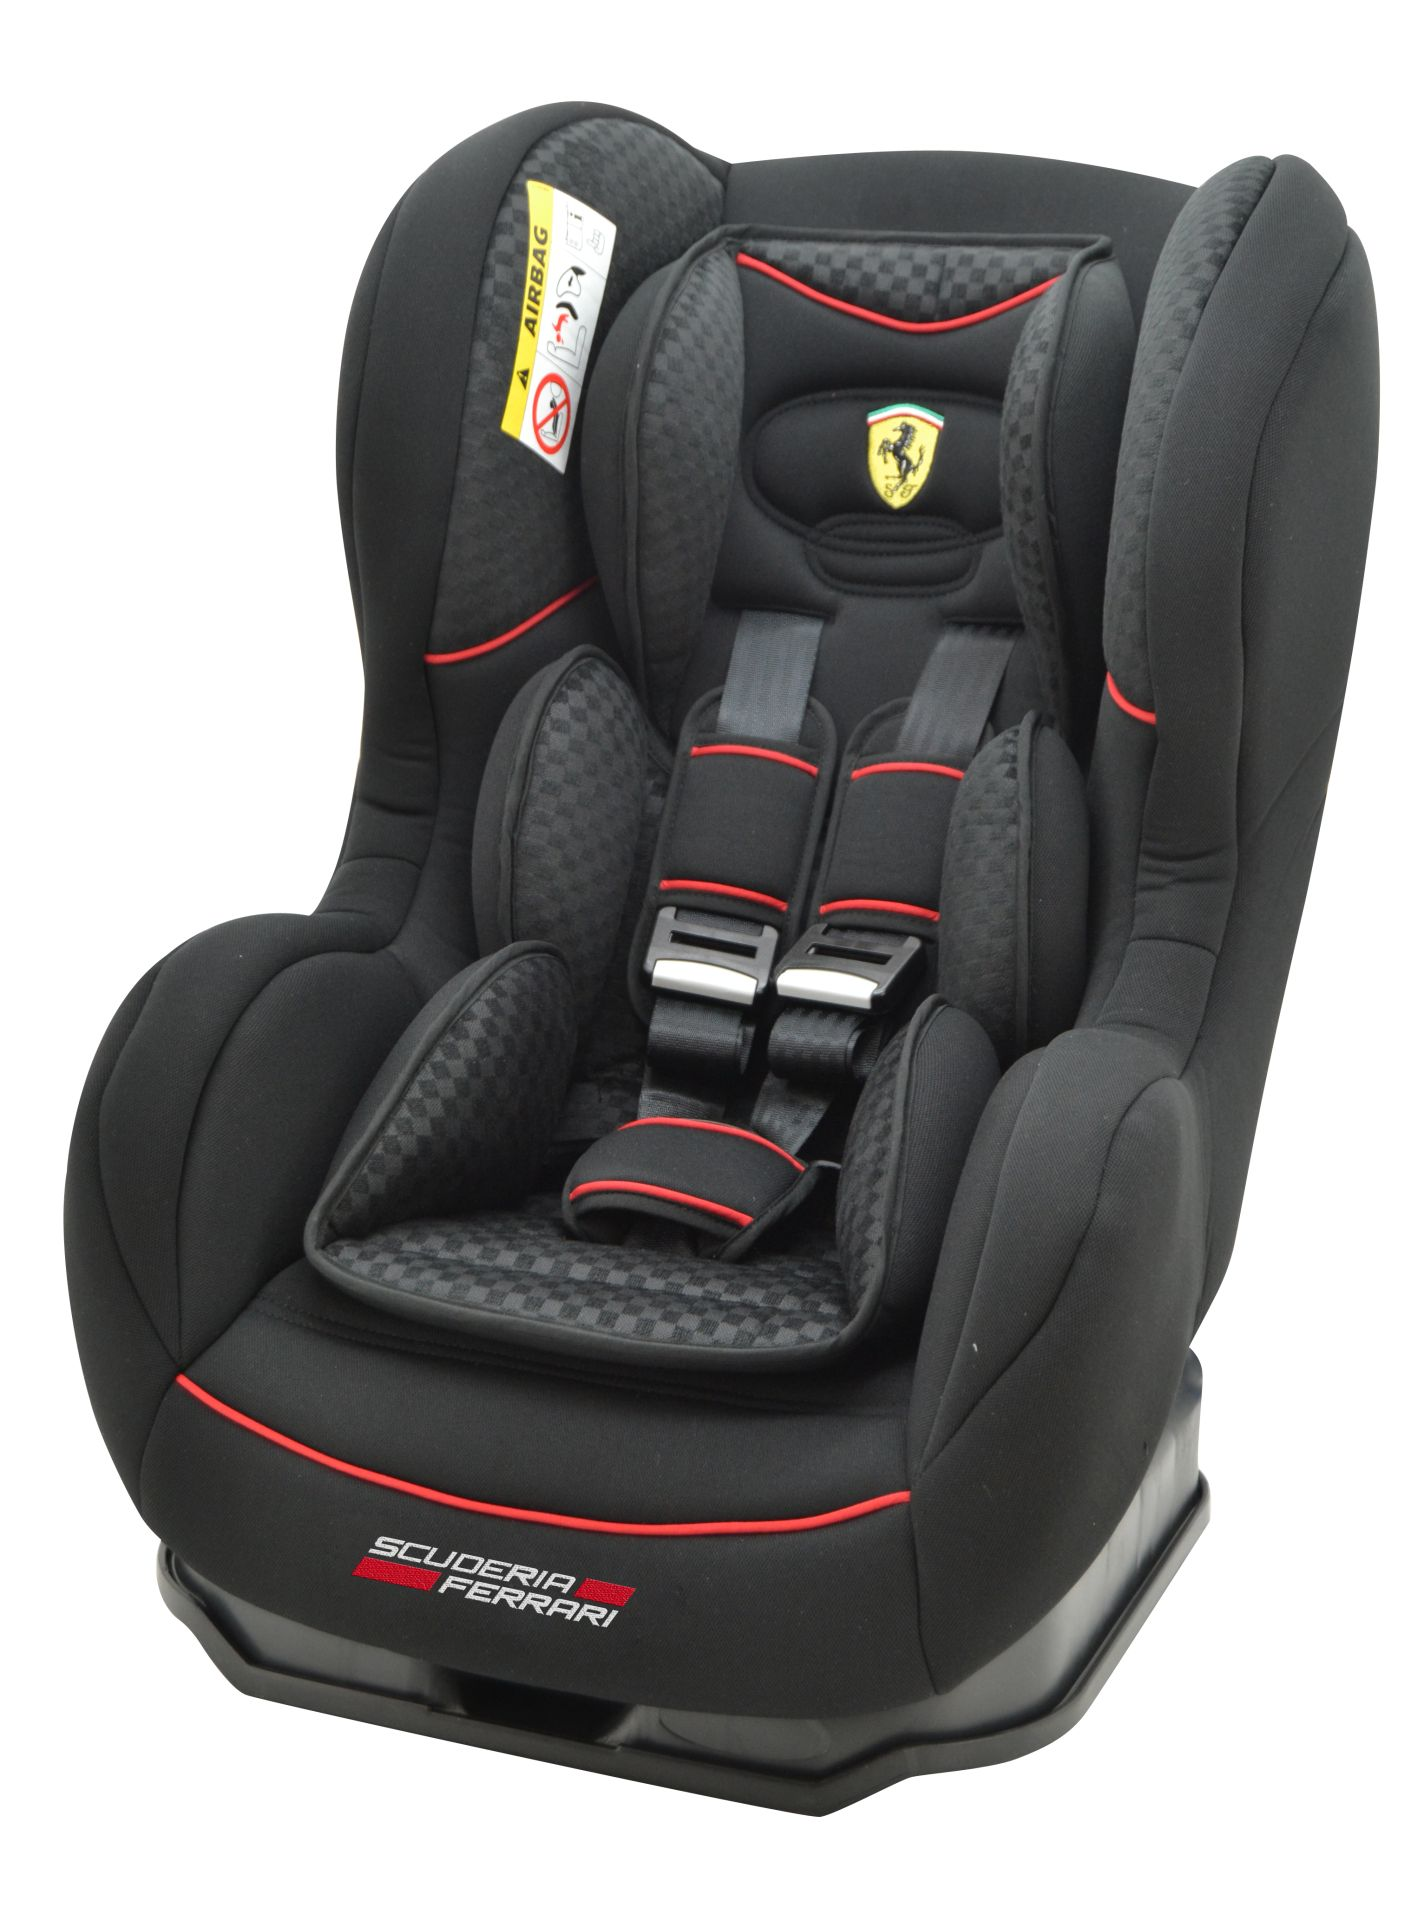 osann car seat cosmo sp buy at kidsroom car seats. Black Bedroom Furniture Sets. Home Design Ideas